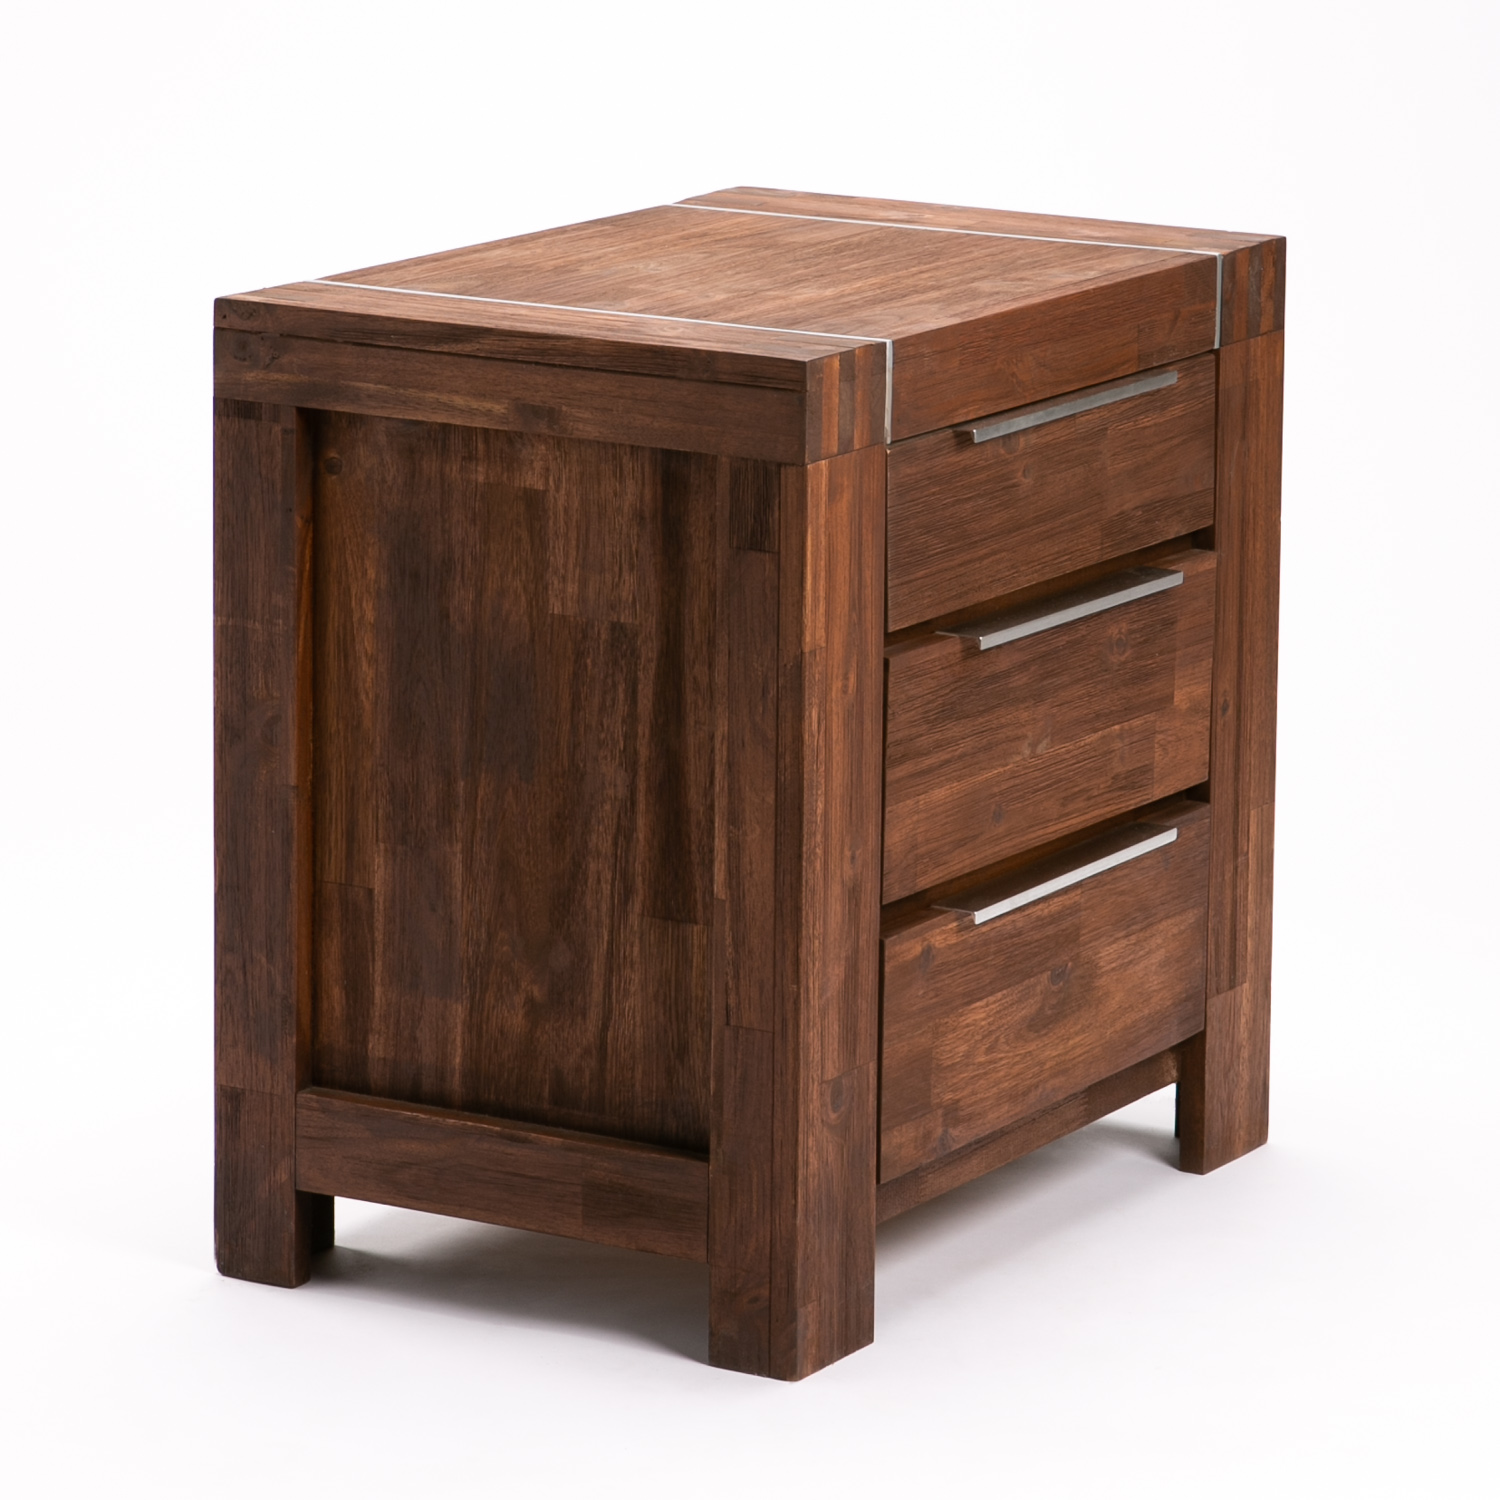 GLACIER 3 DRAWER PEDESTAL